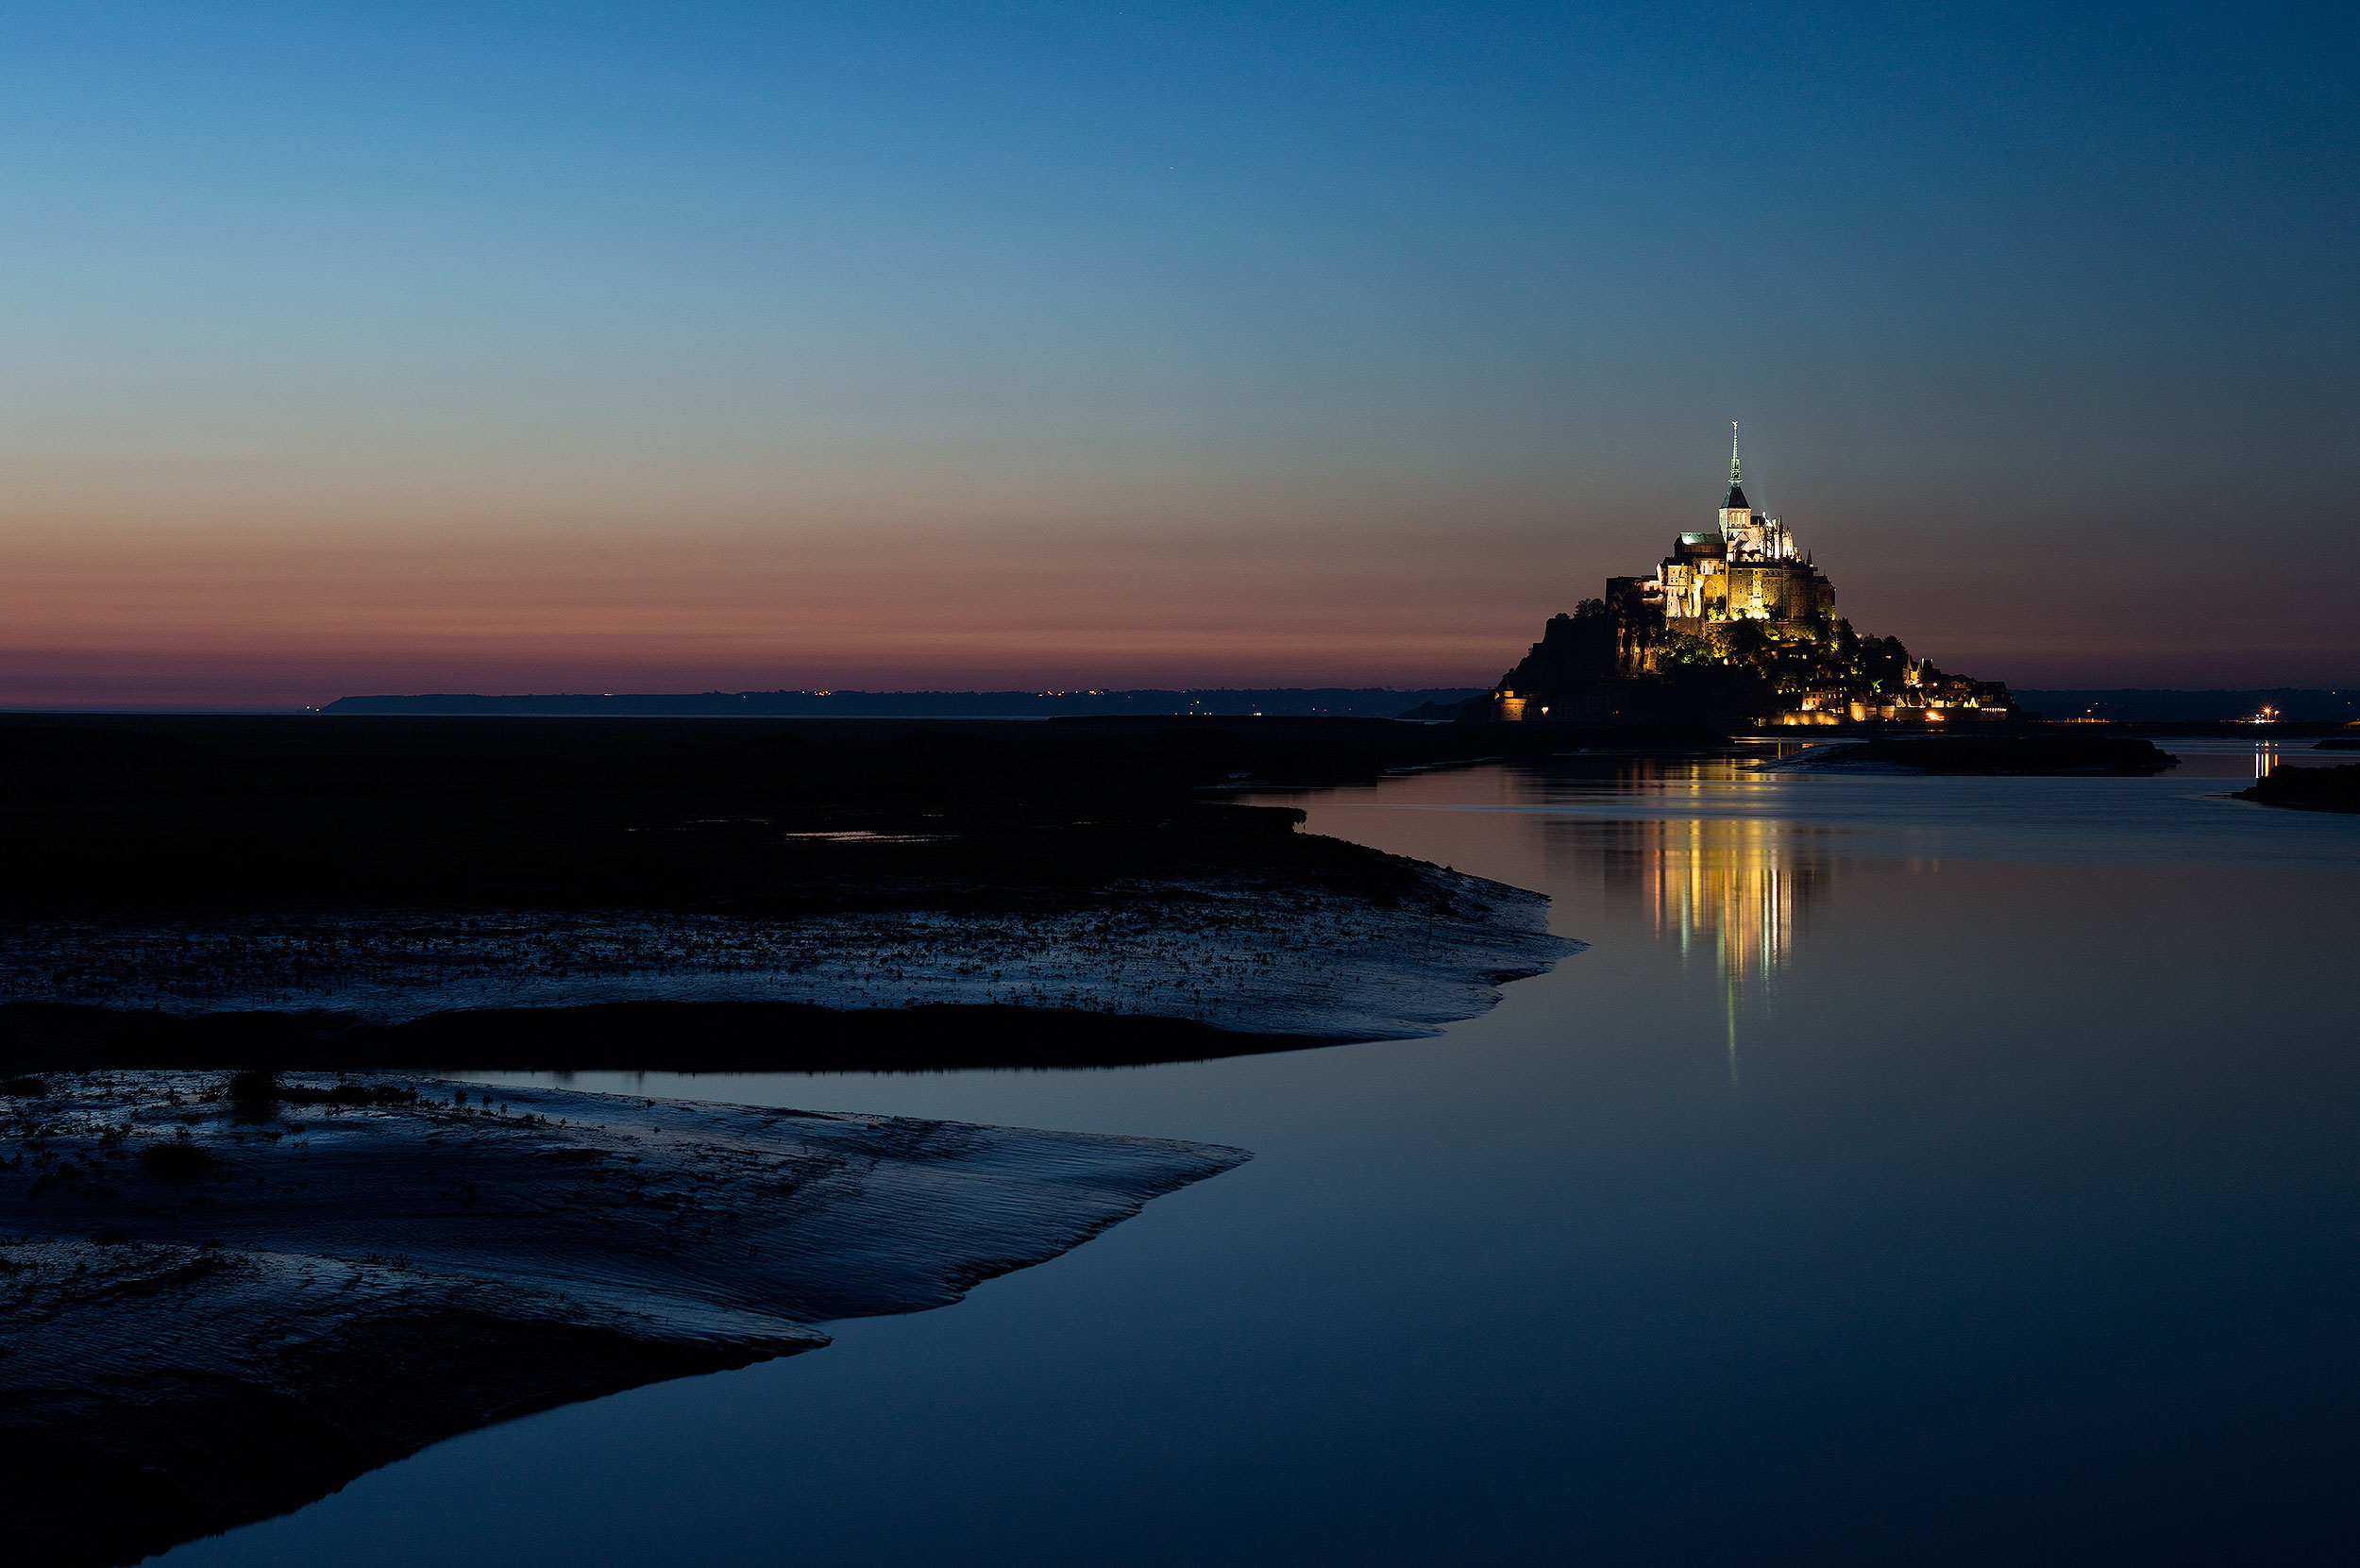 Mont St. Michel by Night Leica S, Summarit-S 70, 8.0 sec, f/8, ISO 160